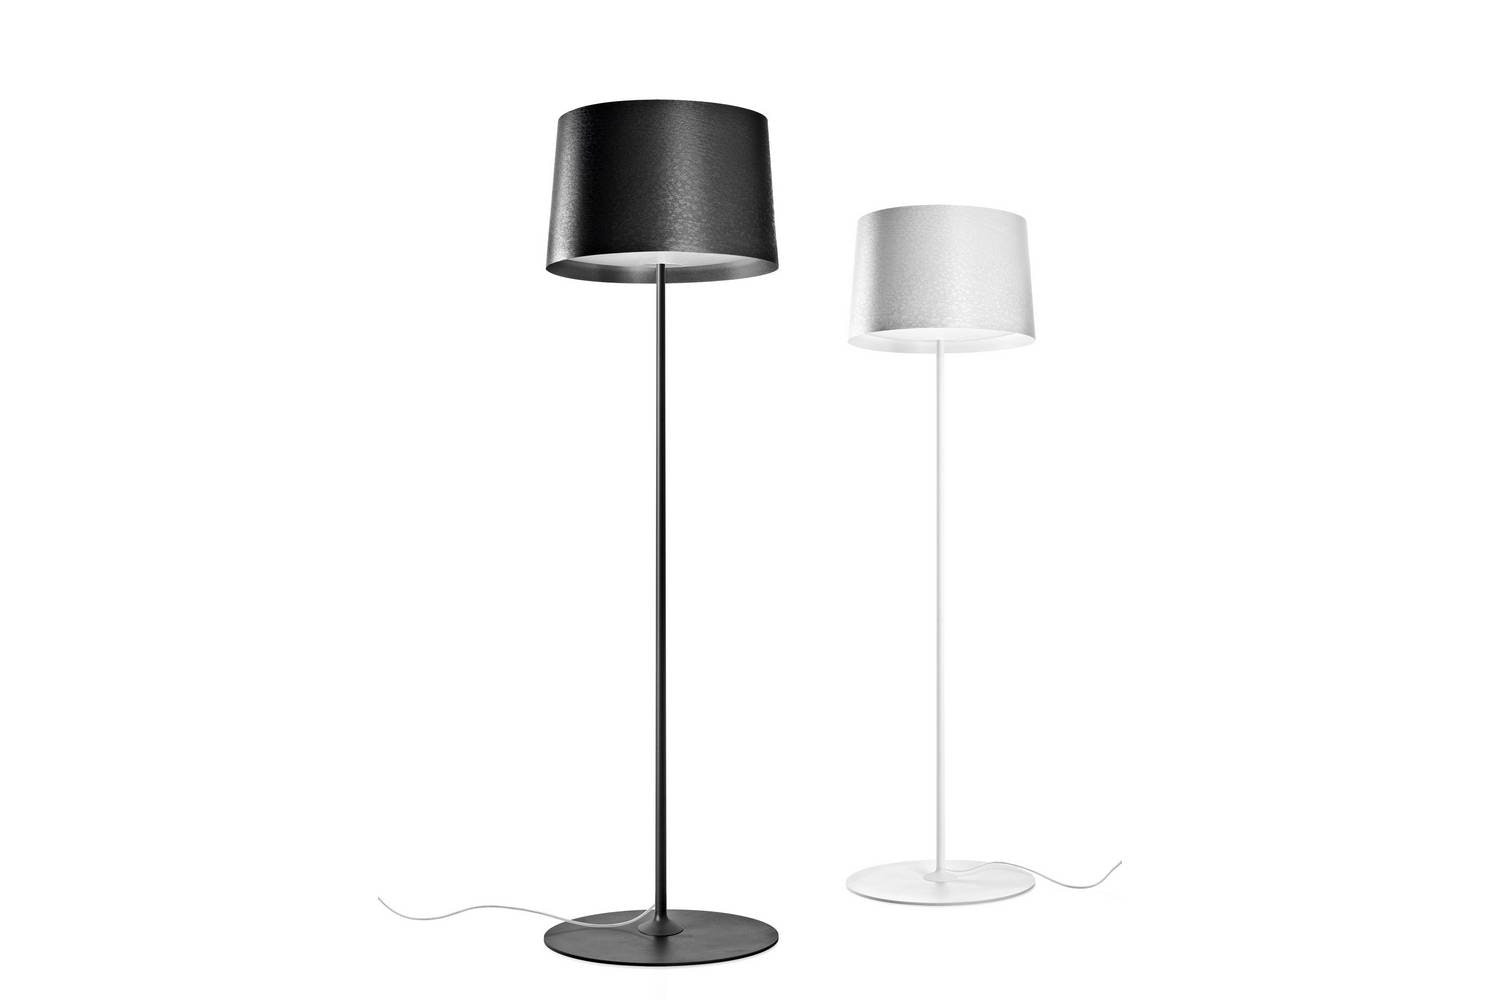 Twiggy Lettura Floor Lamp by Marc Sadler for Foscarini